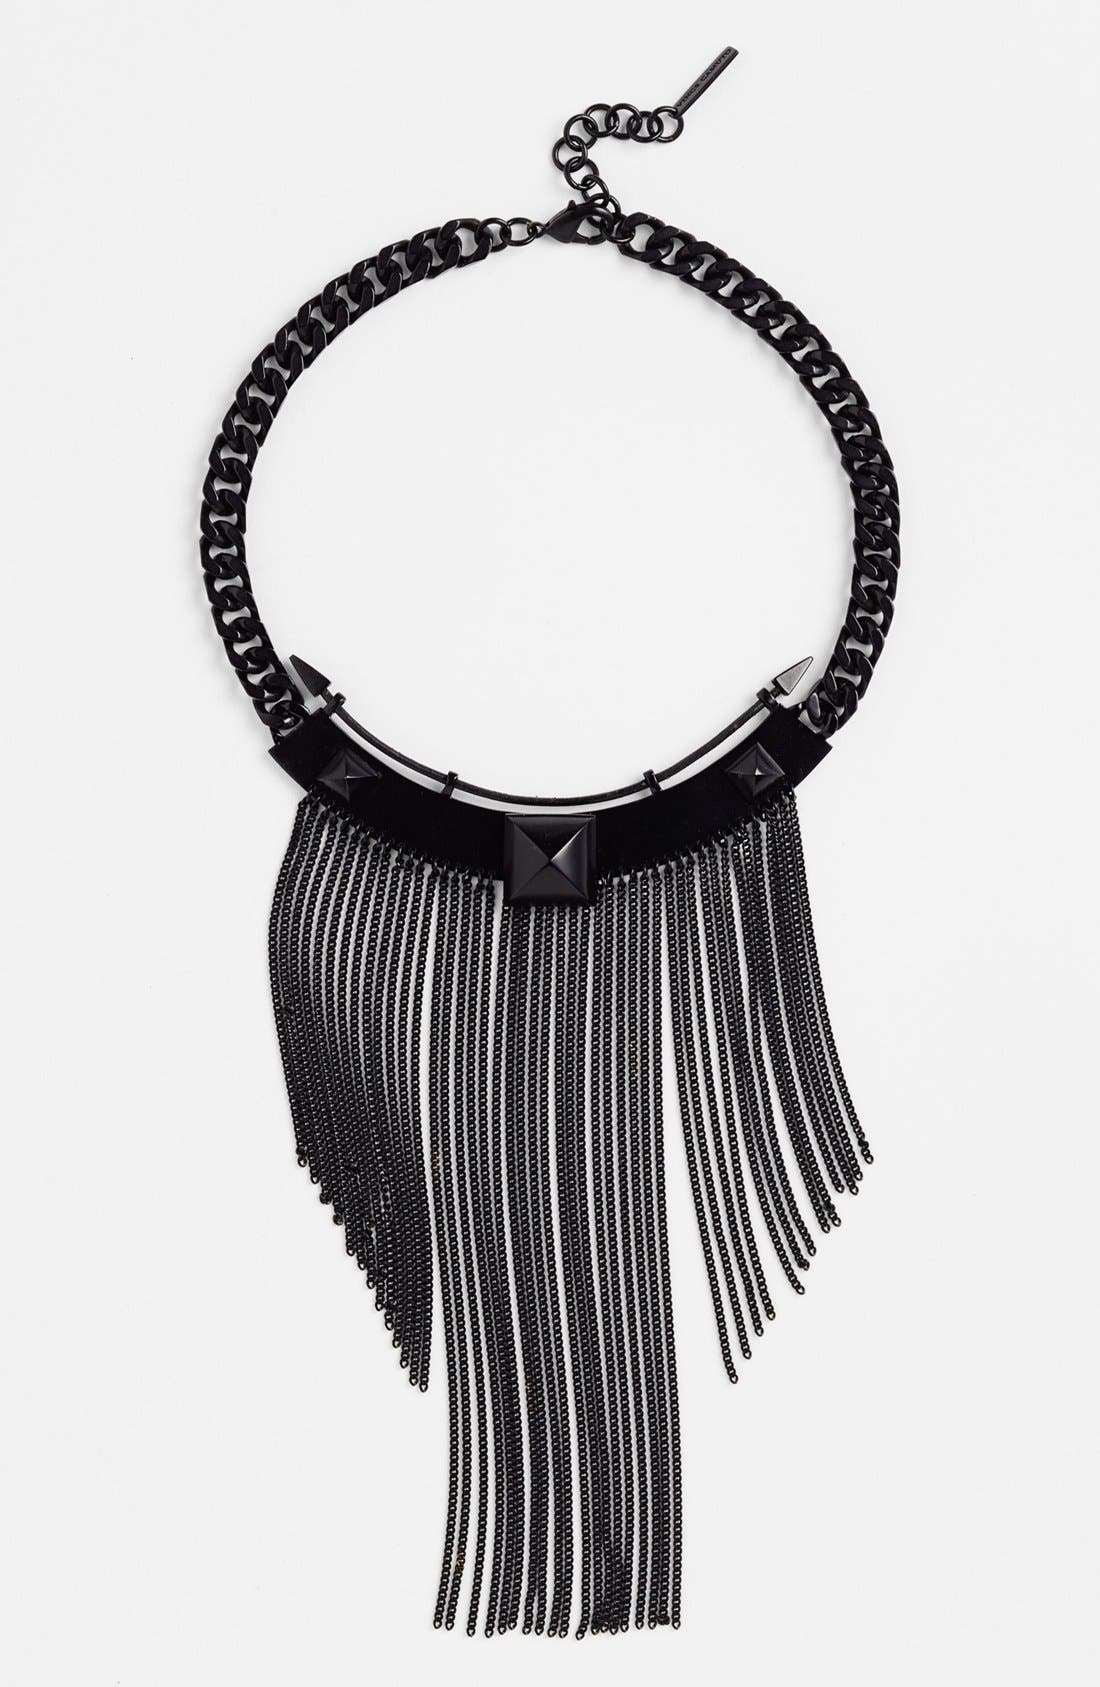 Main Image - Vince Camuto Chain Fringe Collar Necklace